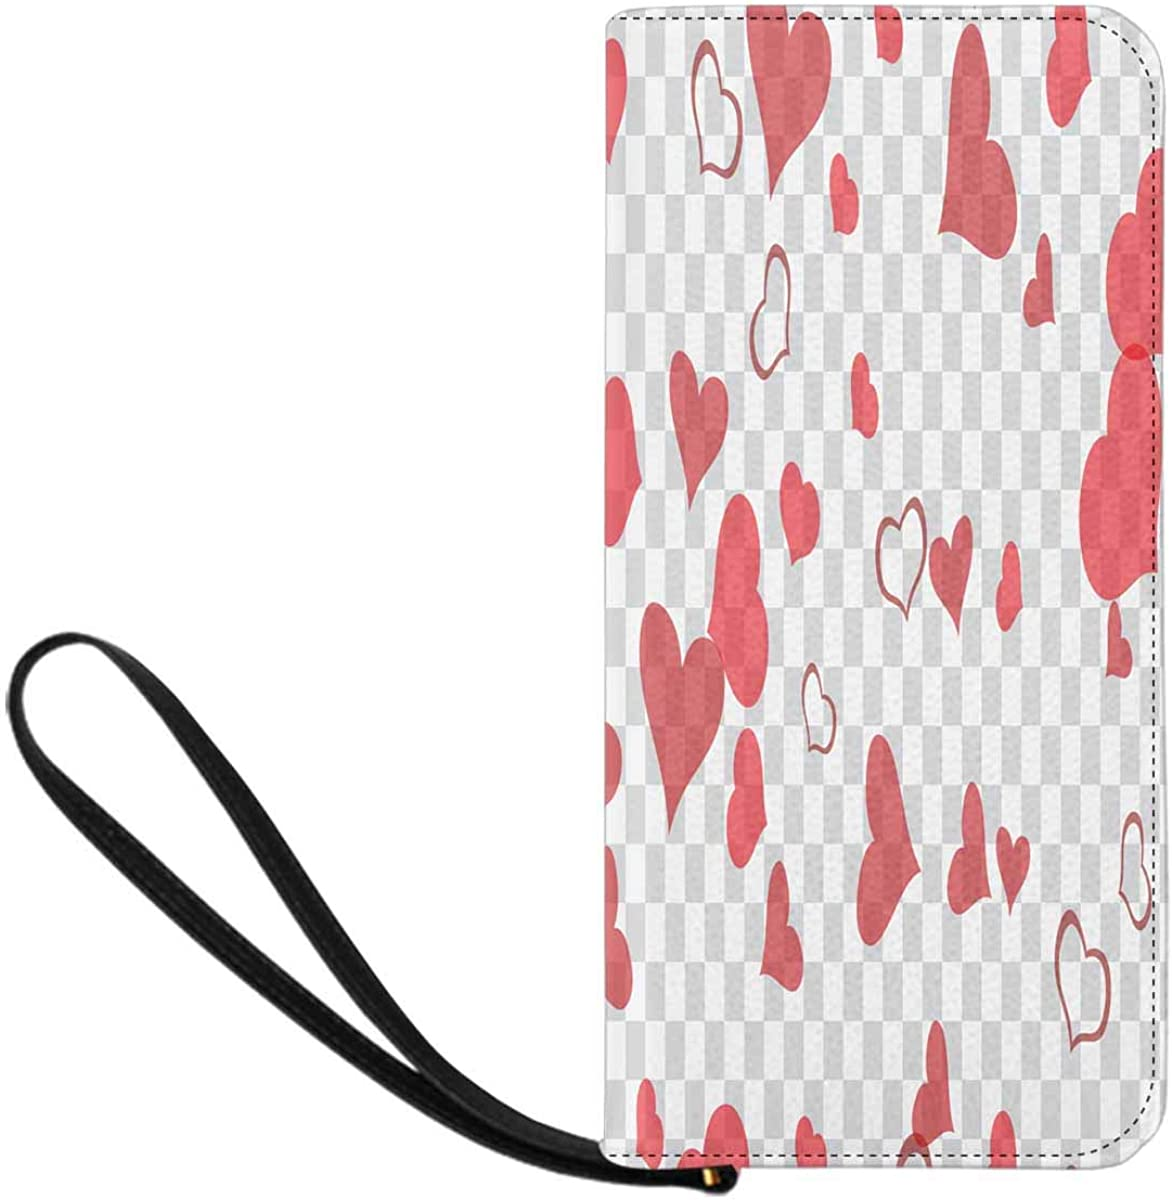 INTERESTPRINT Red Hearts of Confetti Are Flying Clutch Purse for Women Evening Party